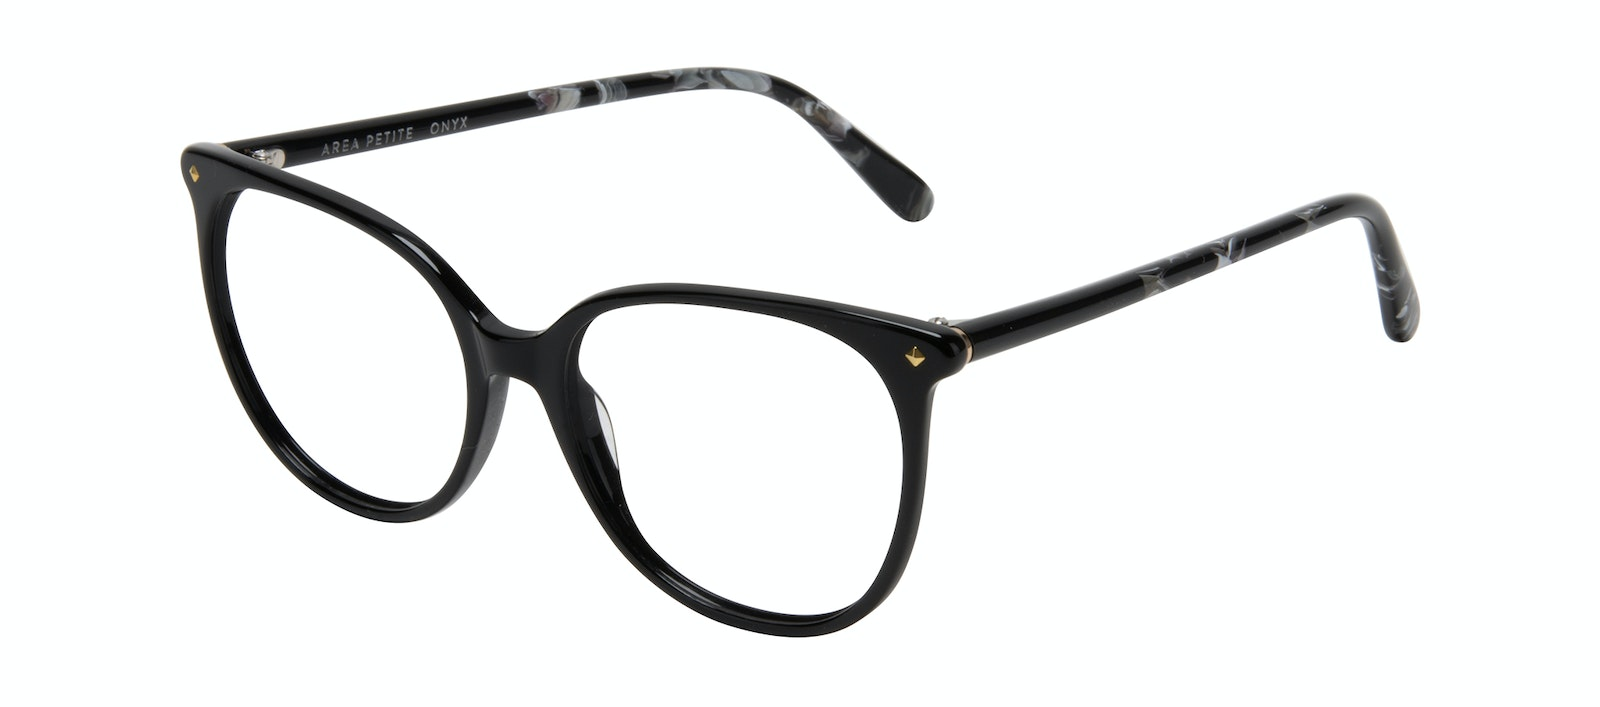 Affordable Fashion Glasses Round Eyeglasses Women Area Petite Onyx Tilt